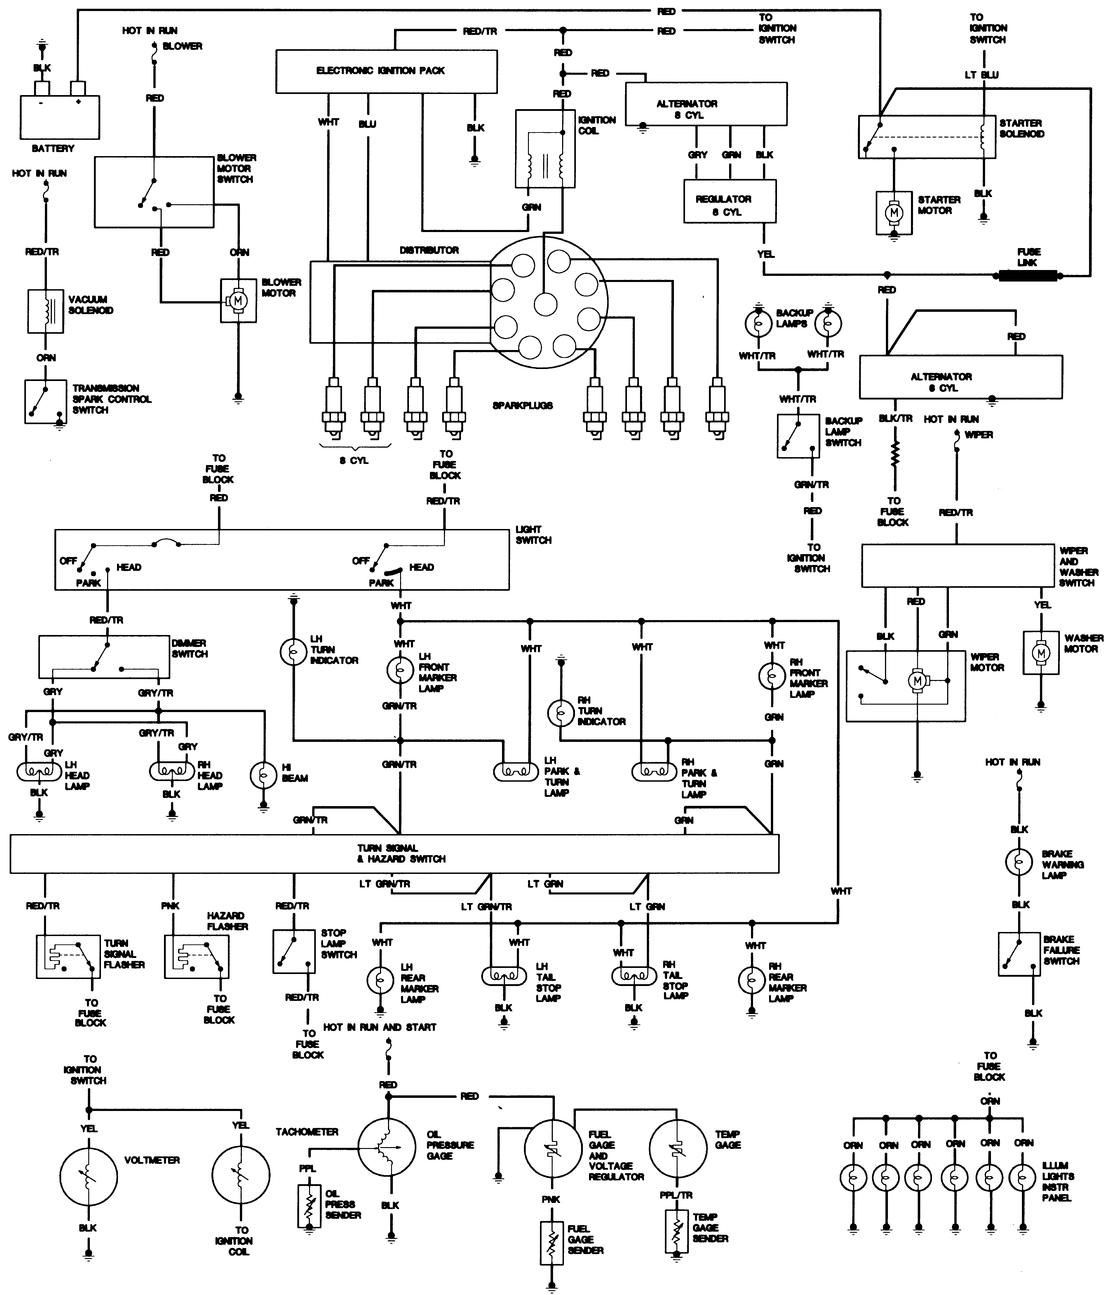 78 jeep cj5 wiring diagram